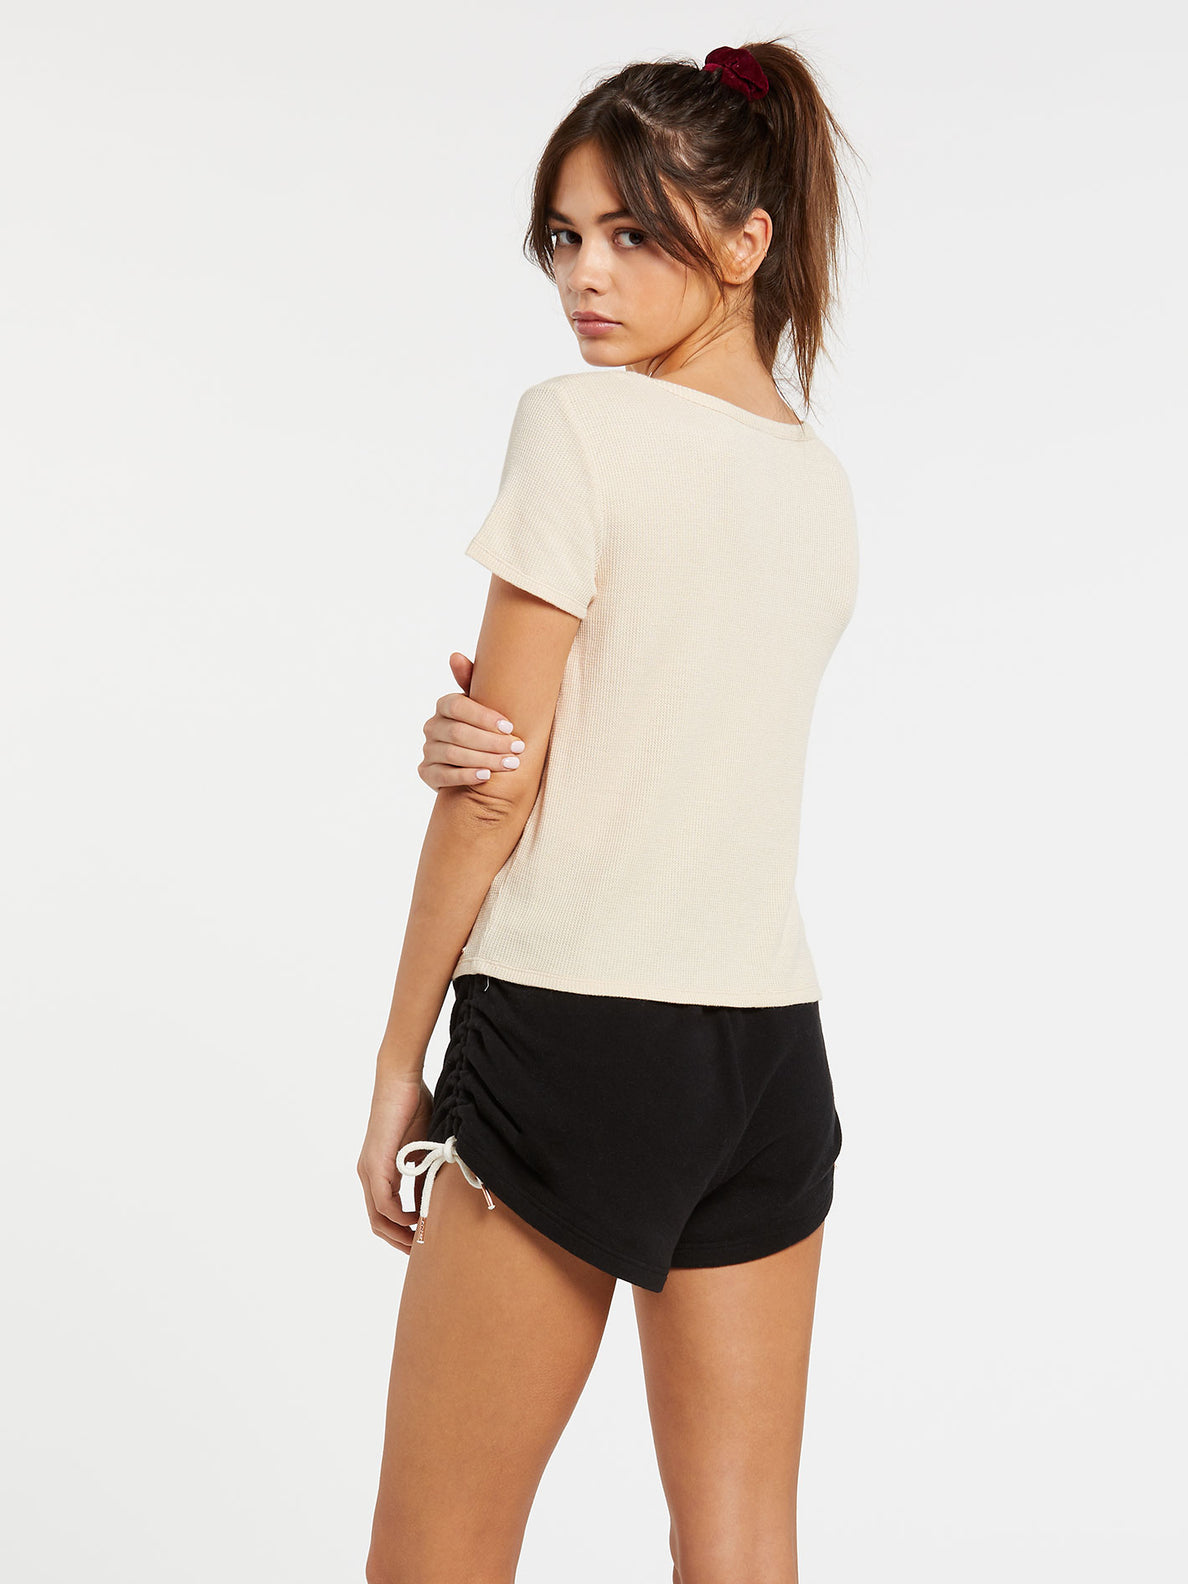 Lived In Lounge Thermal Short Sleeve - Sand (B0132000_SAN) [B]